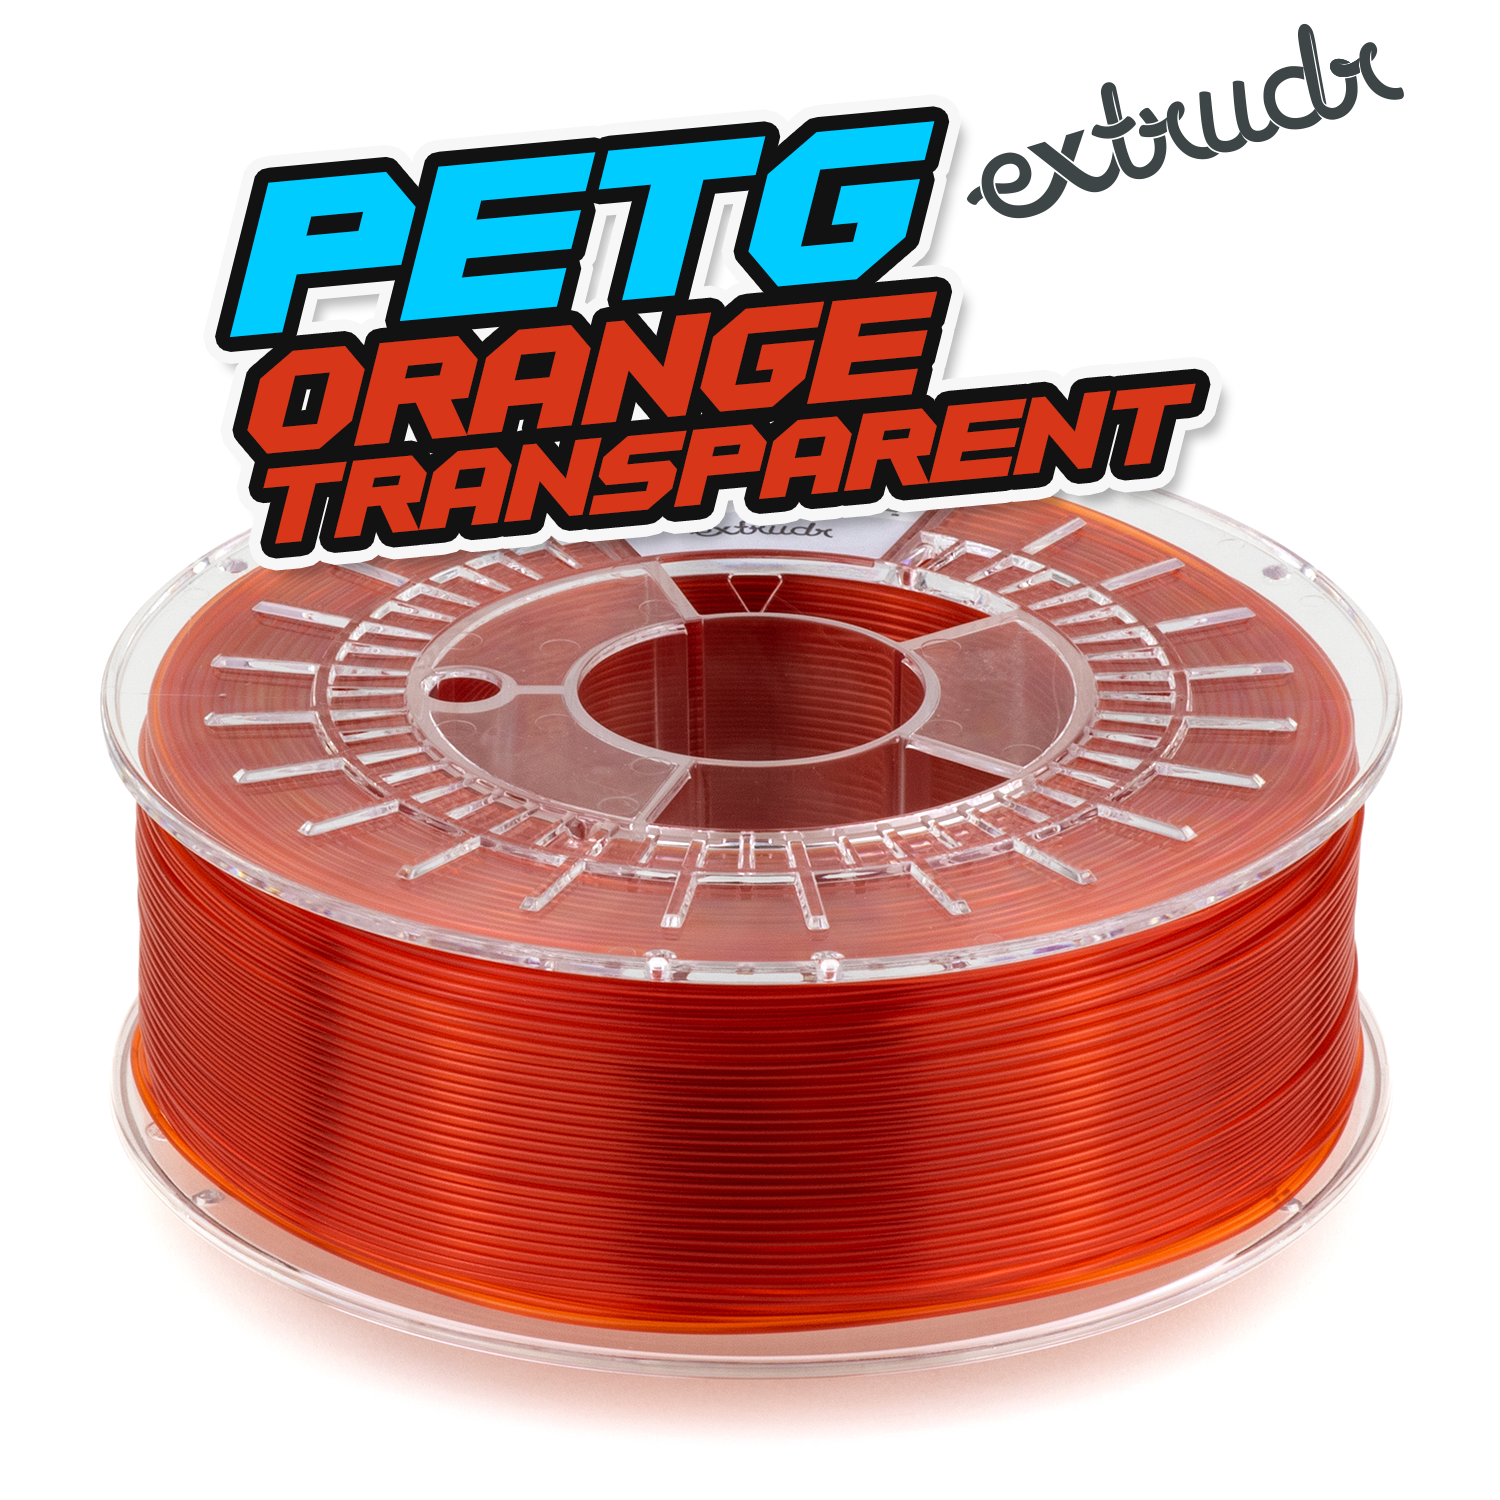 Extrudr PETG - Orange transparent [1.75mm] (35,45€/Kg)